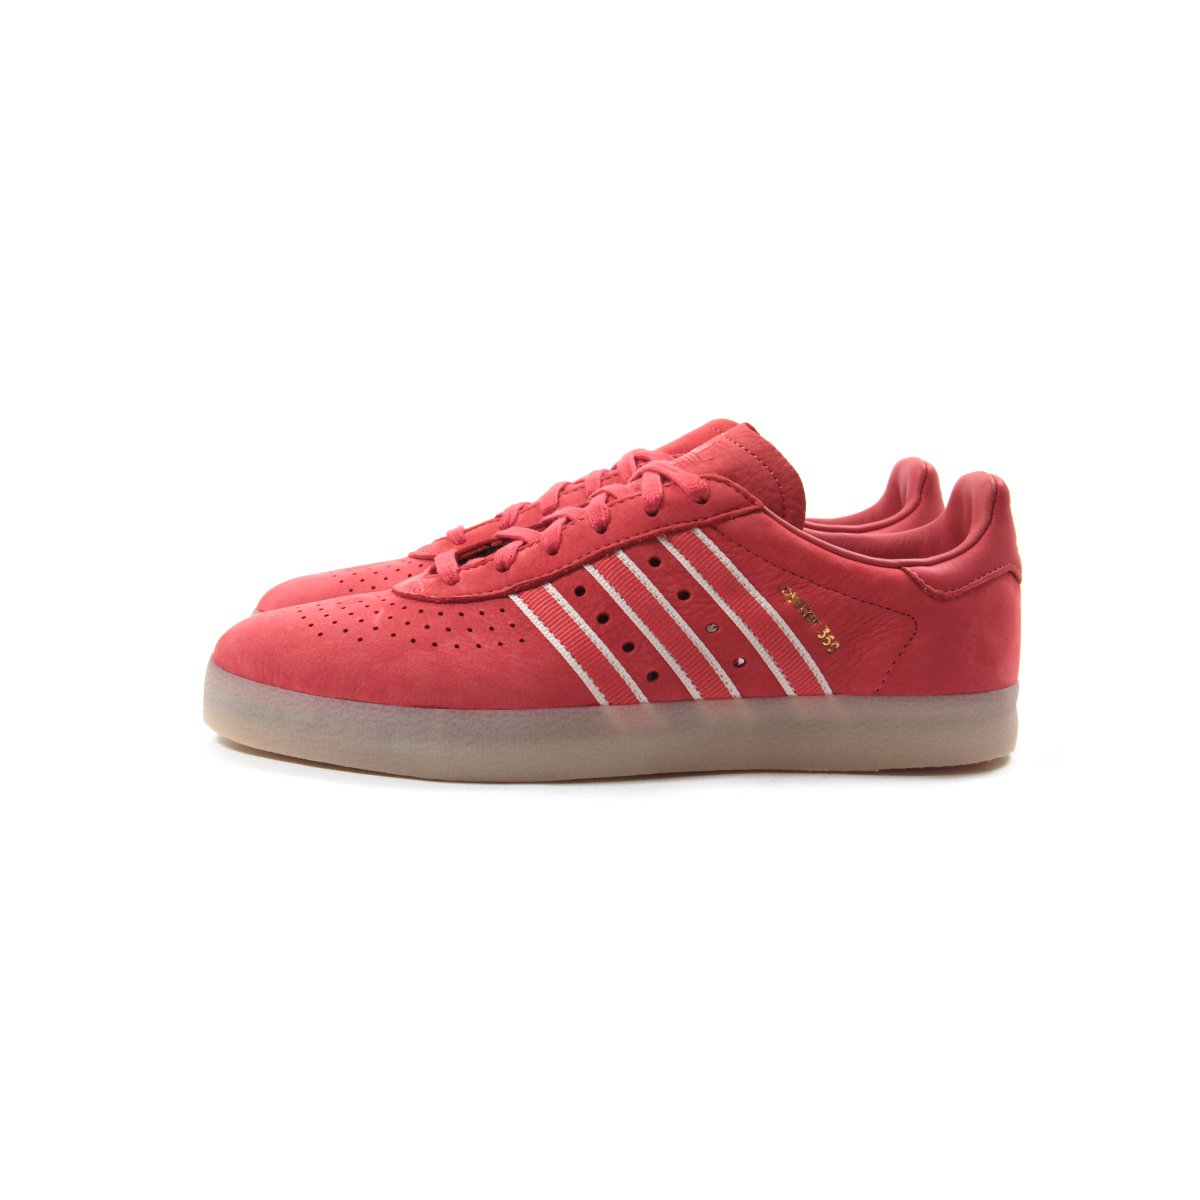 the latest 0965e 78ecd ConceptsIntl | adidas Oyster 350 (Trace Scarlet/White-Gold)